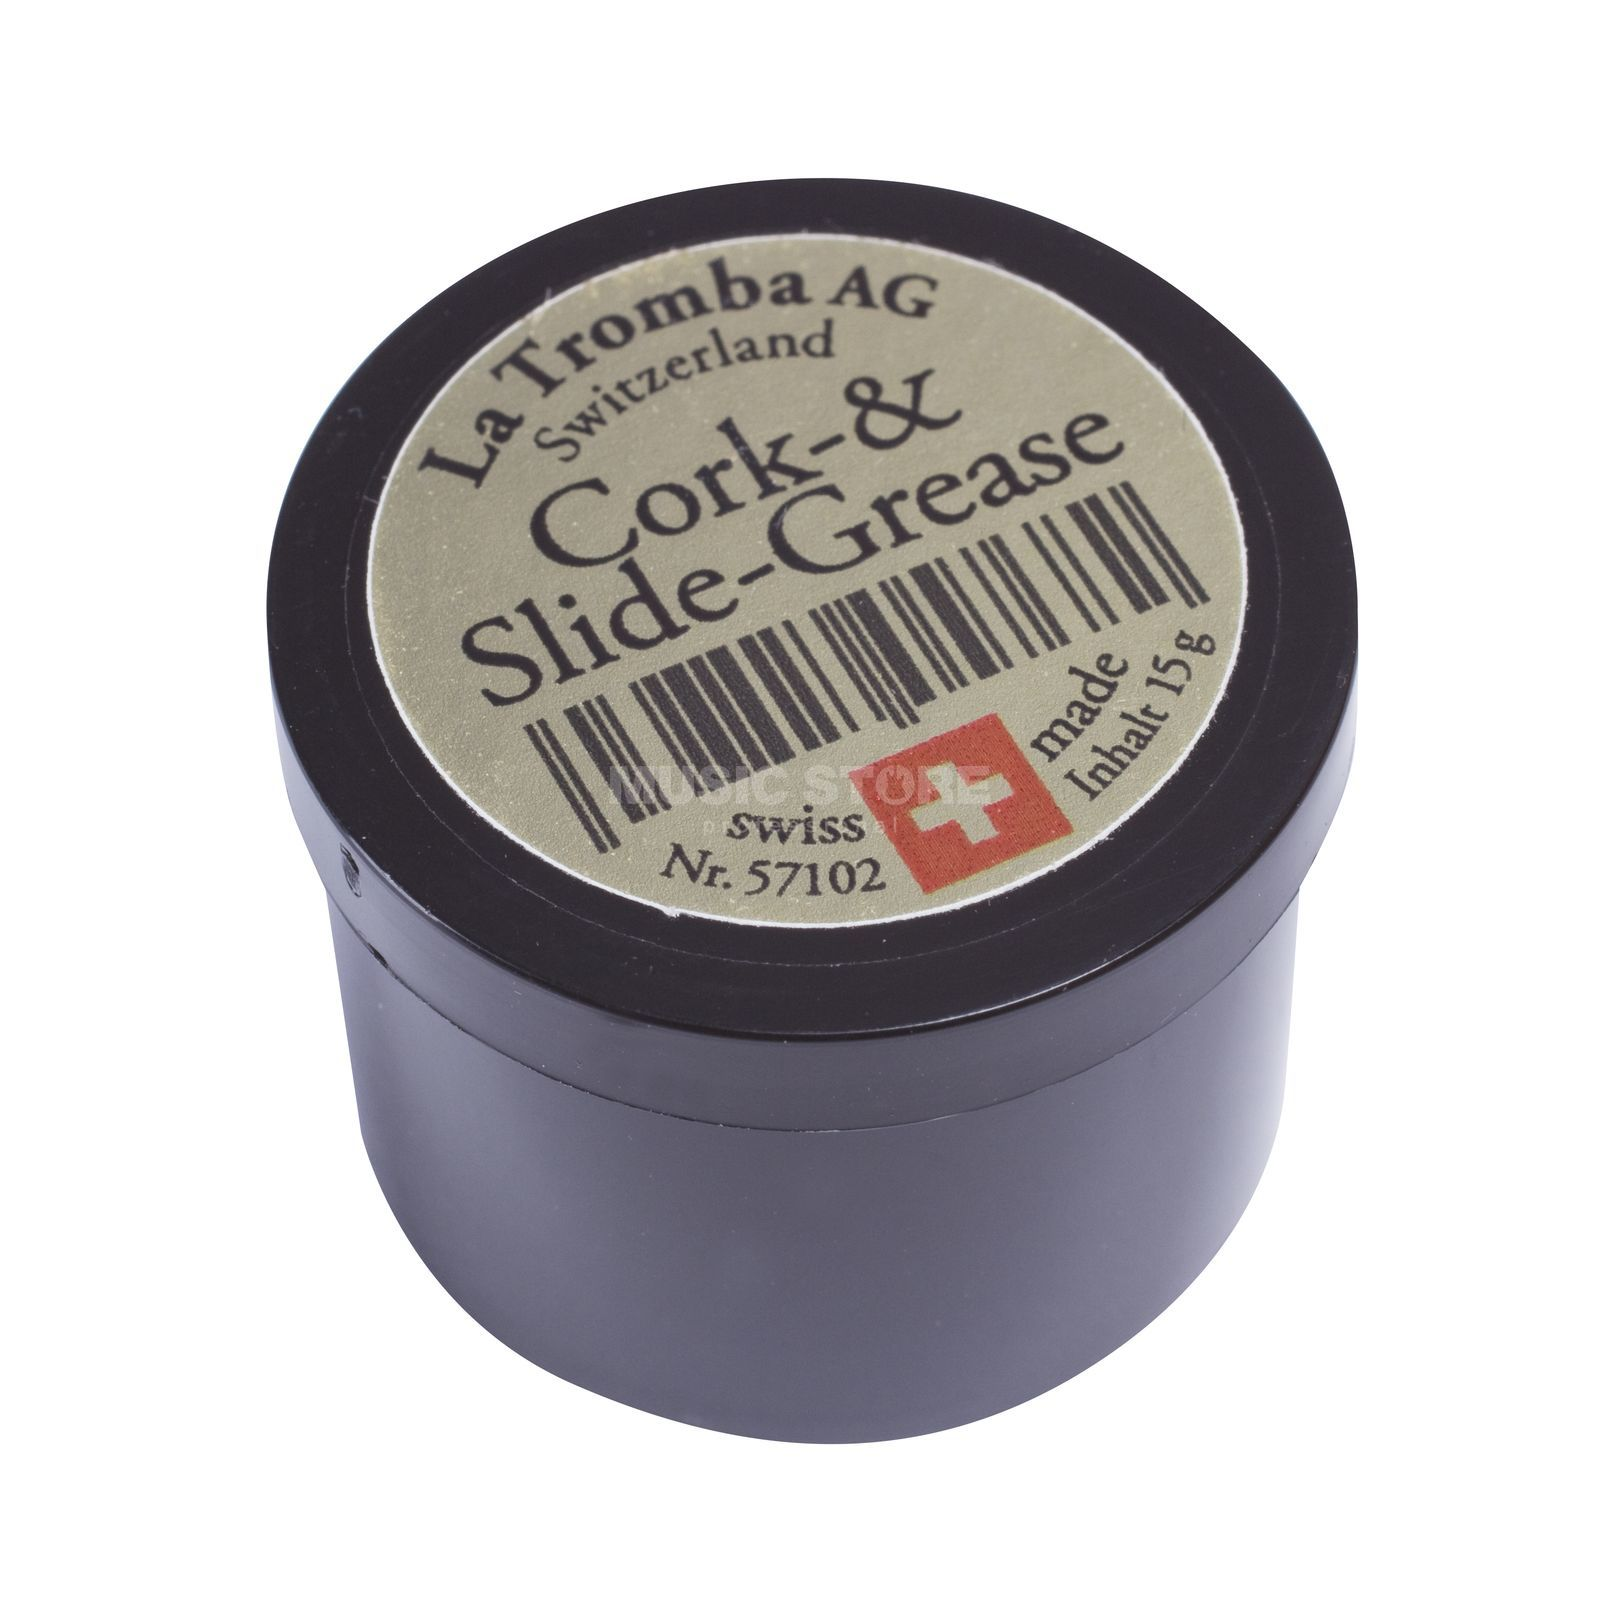 LA TROMBA Cork & Slide Grease 15g (100g = 24.- Ç) Product Image